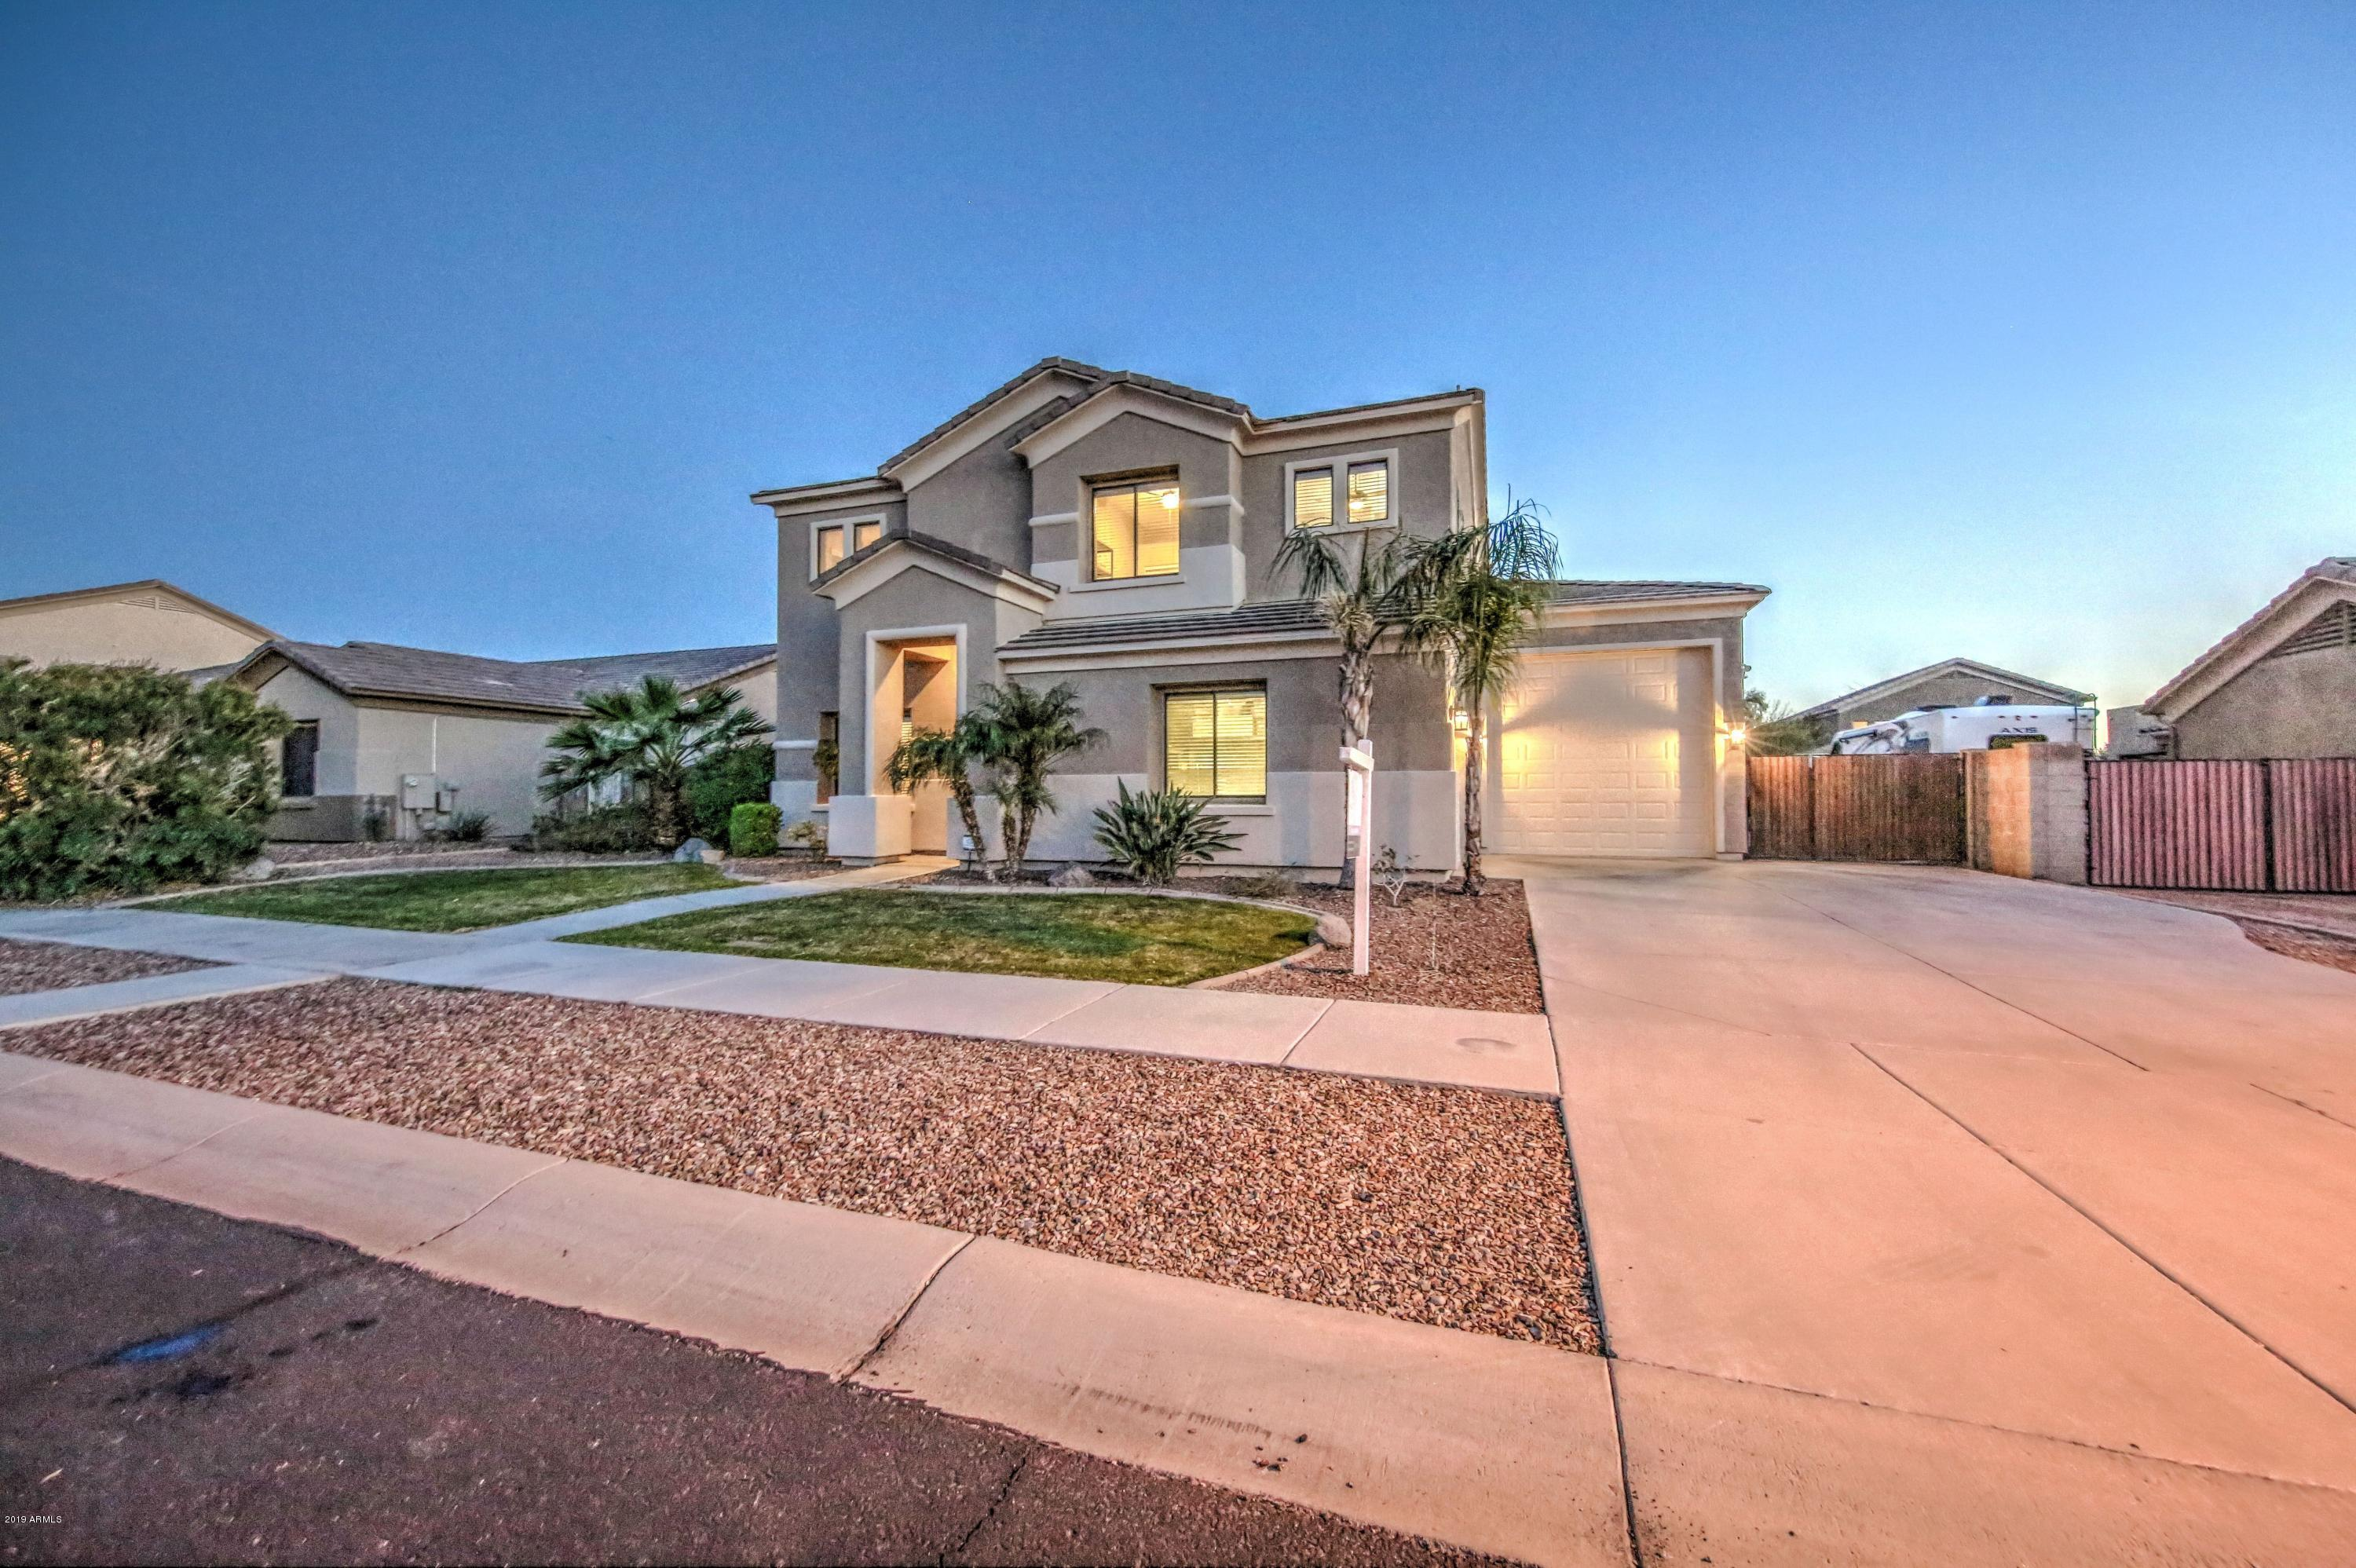 Photo of 11317 E ENROSE Street, Mesa, AZ 85207